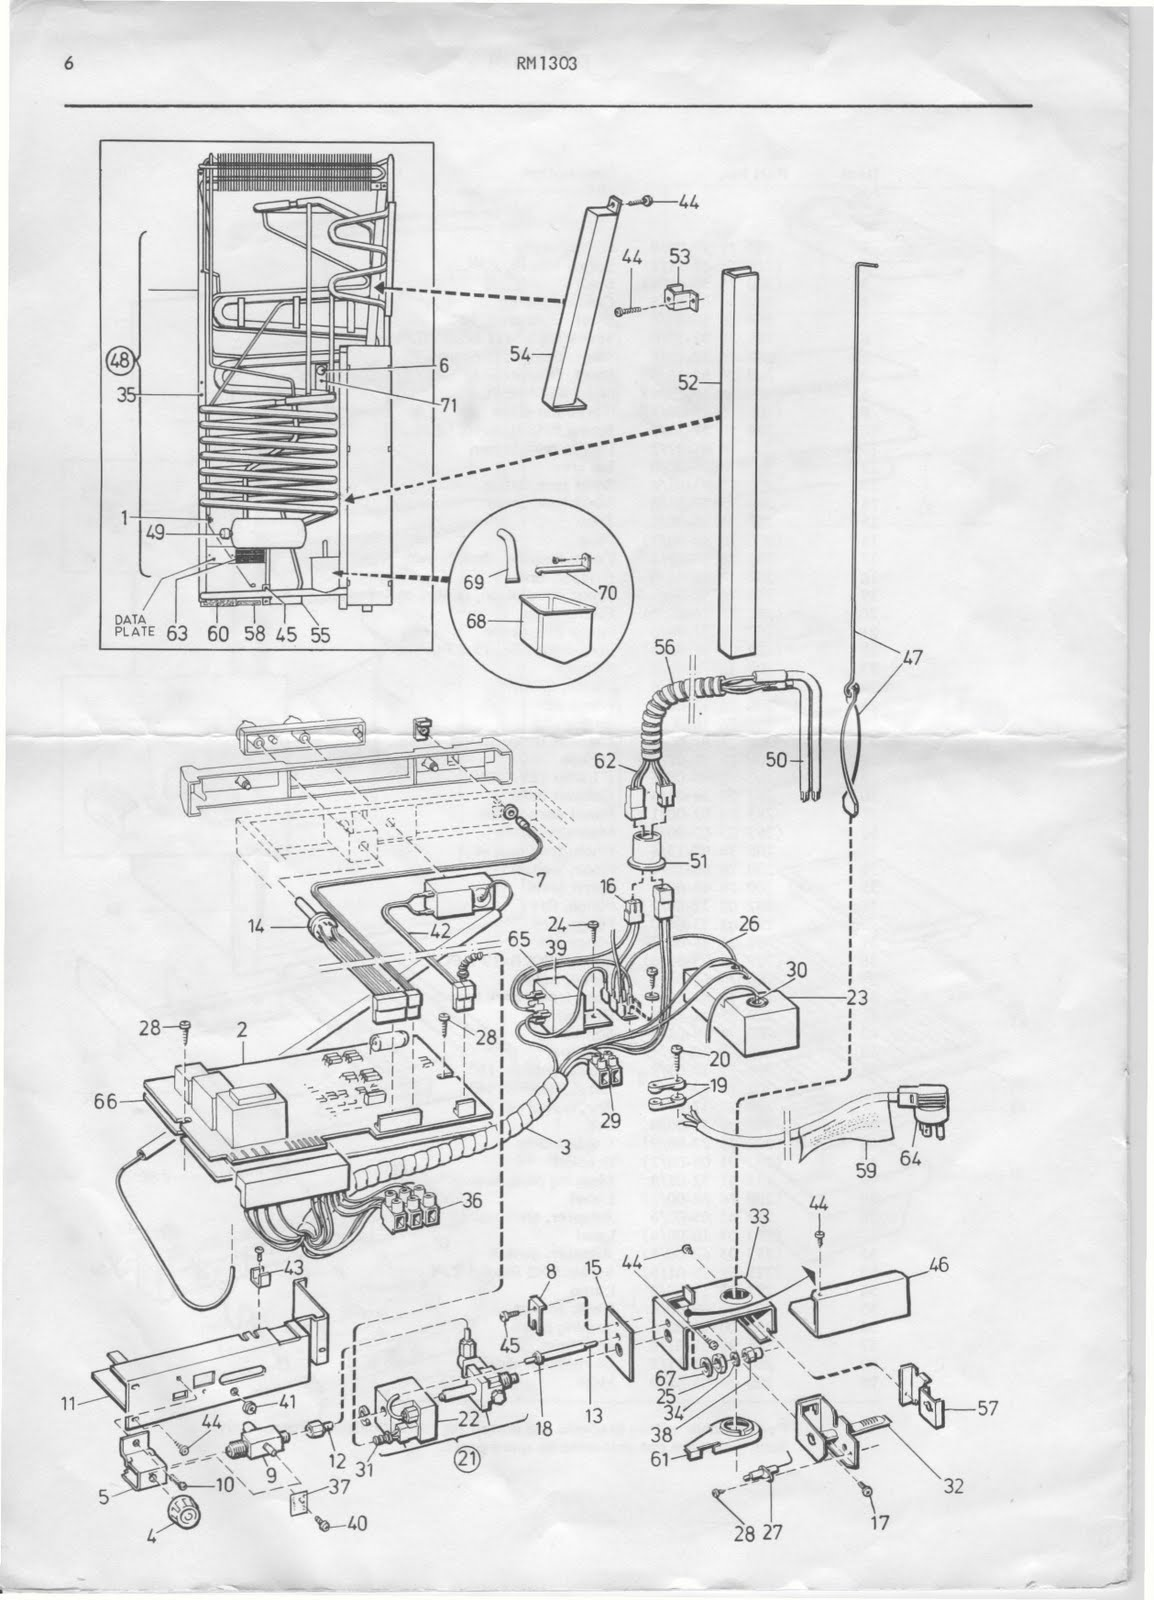 dometic rv air conditioner wiring diagram with Rv Toilet Pressure Switch Schematic on Home Air Conditioner Electrical Diagram furthermore 15 Coleman Mach Wiring Diagram additionally Duo Therm Rv Thermostat Wiring Diagram For Air Conditioner in addition Dometic Rv Furnace Wiring Diagram moreover RM2852 3.